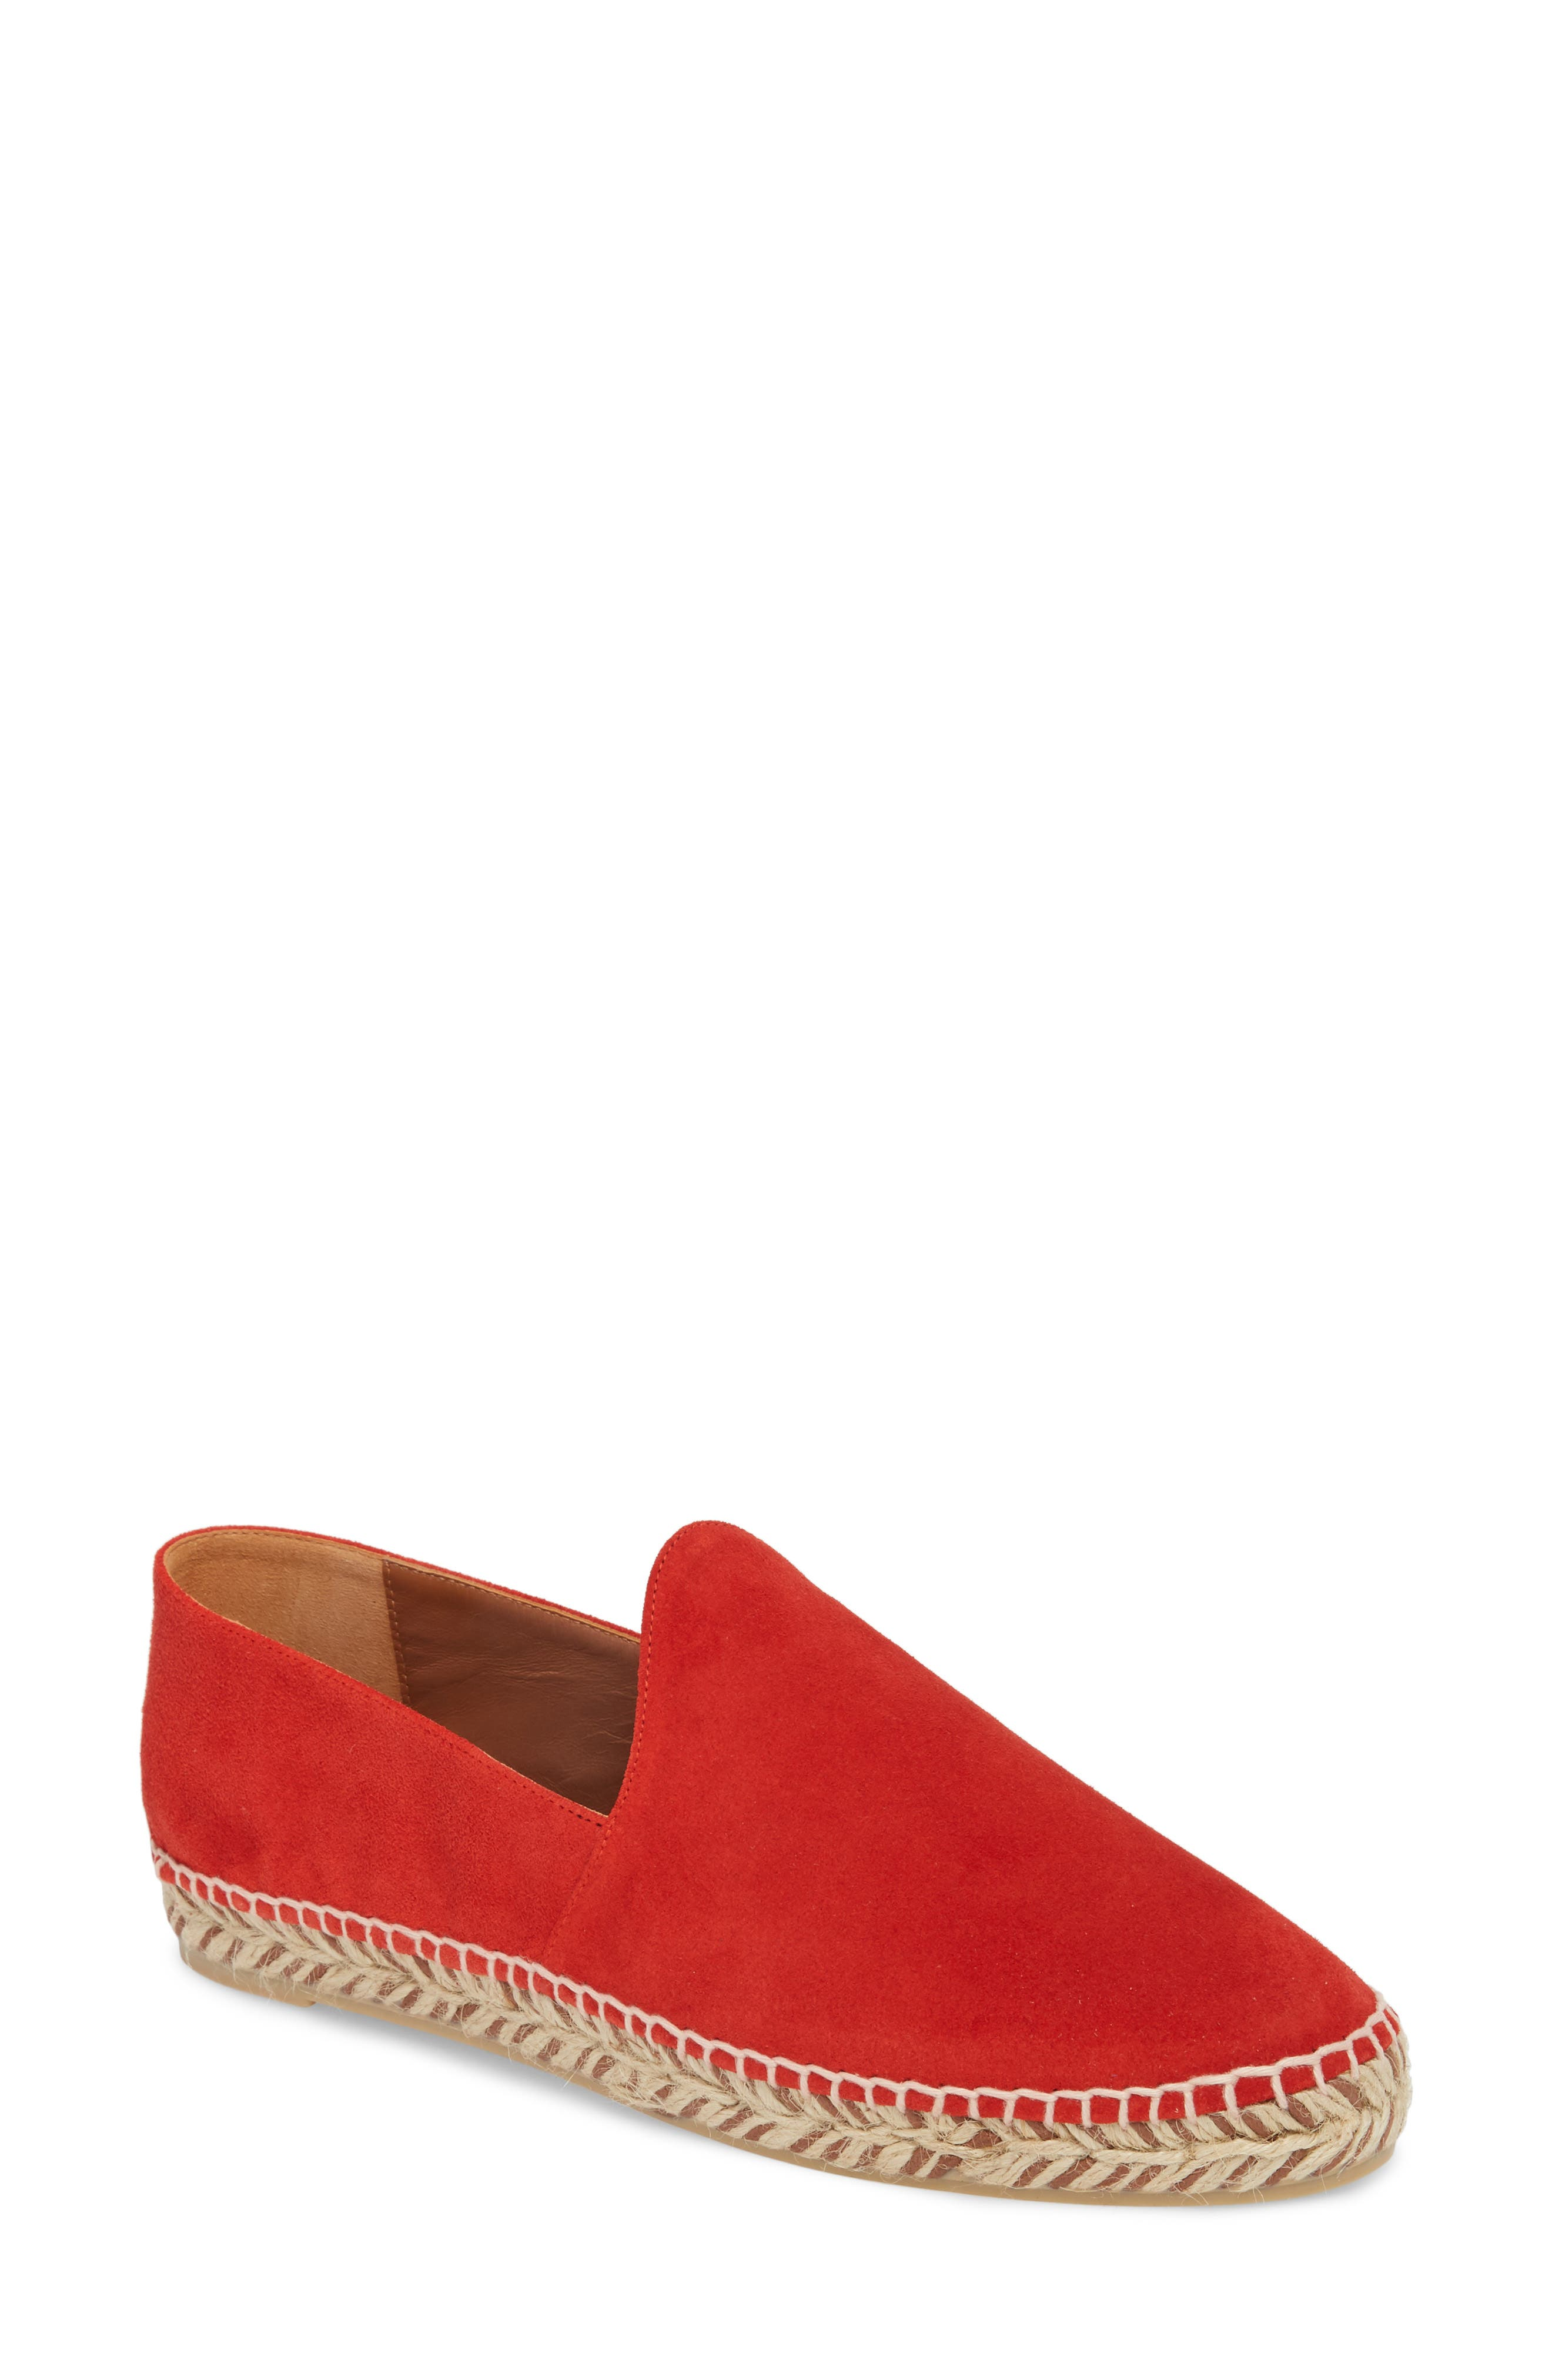 Haddie Espadrille Loafer,                             Main thumbnail 4, color,